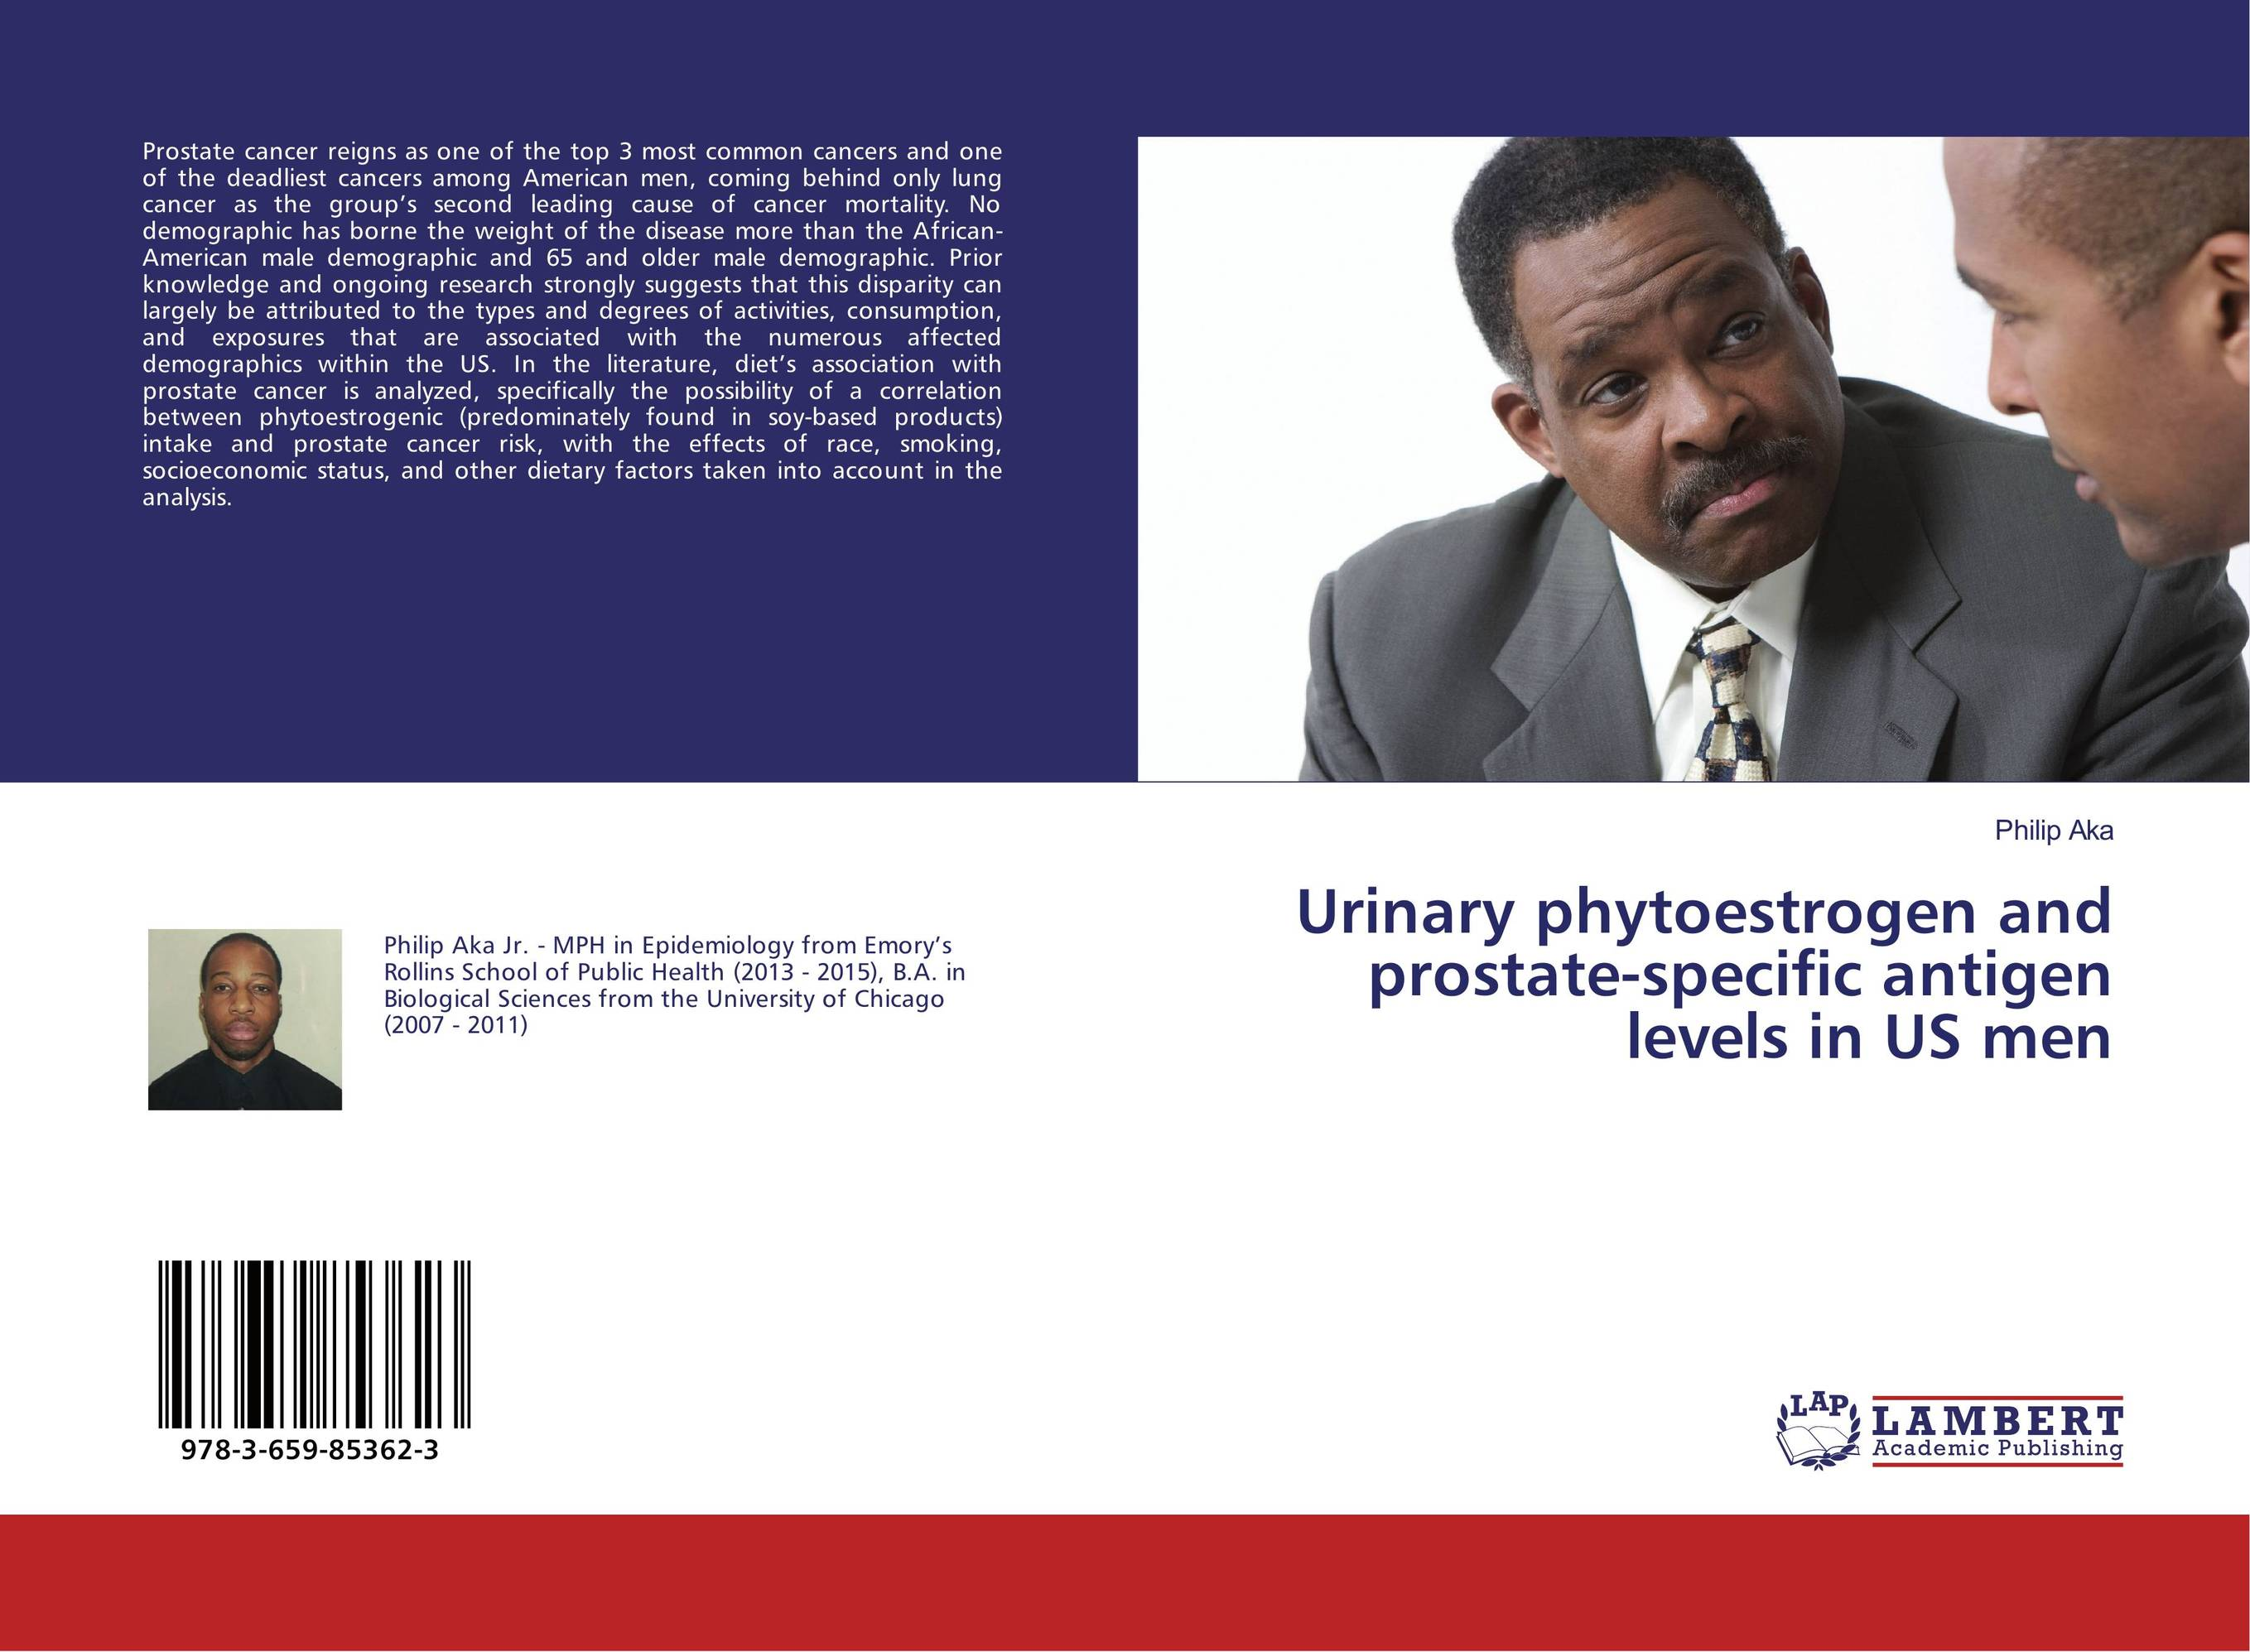 Urinary phytoestrogen and prostate-specific antigen levels in US men prostate cancer